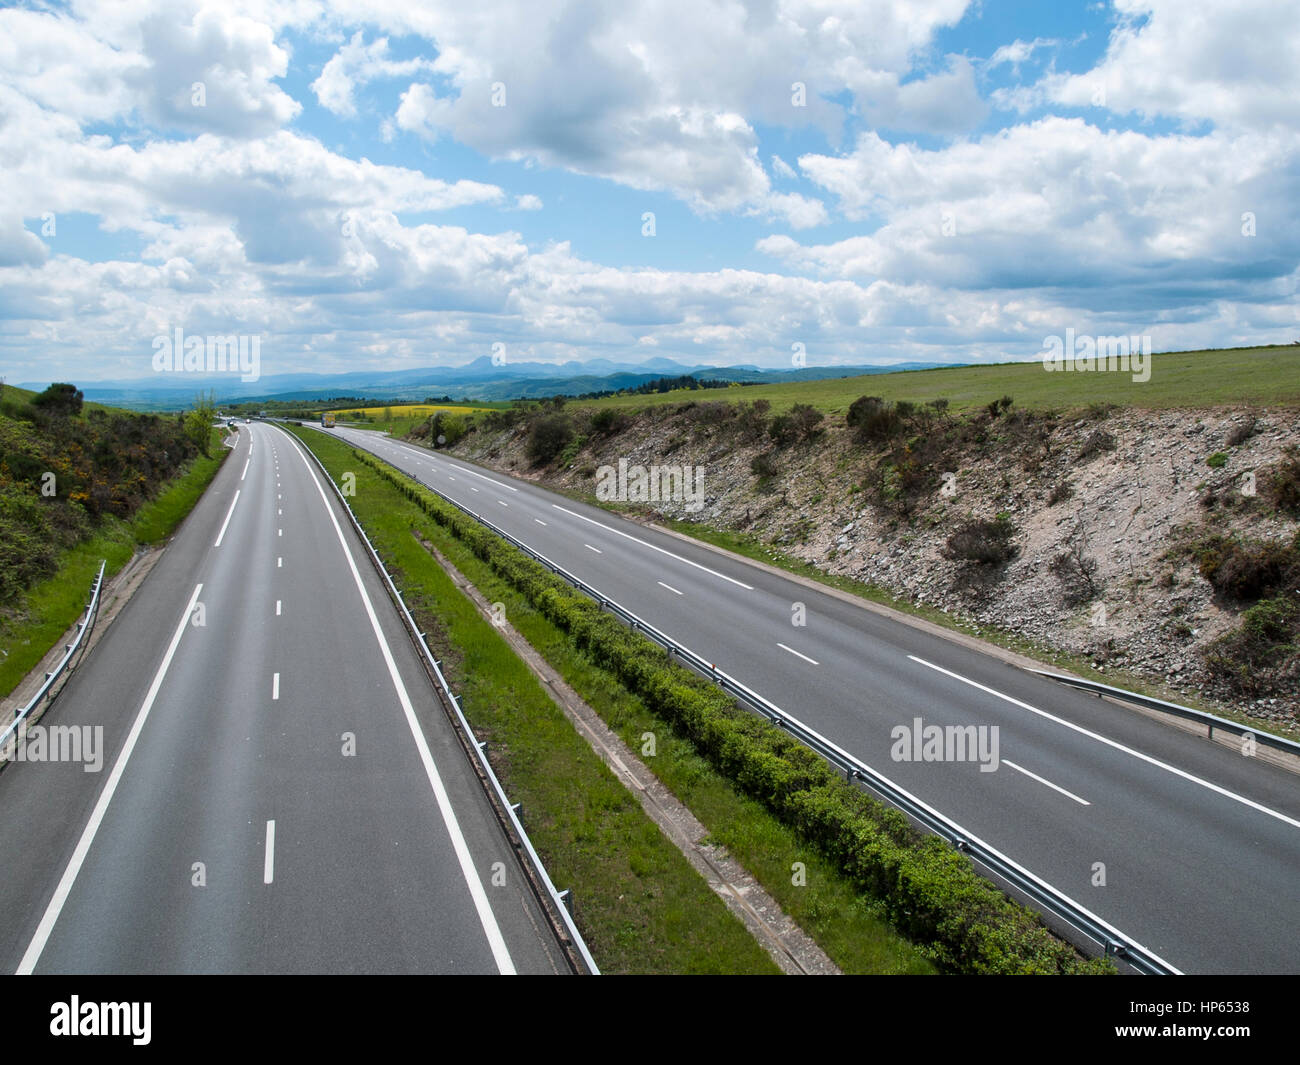 view of a75 autoroute between clermont ferrand and millau france stock photo 134130732 alamy. Black Bedroom Furniture Sets. Home Design Ideas